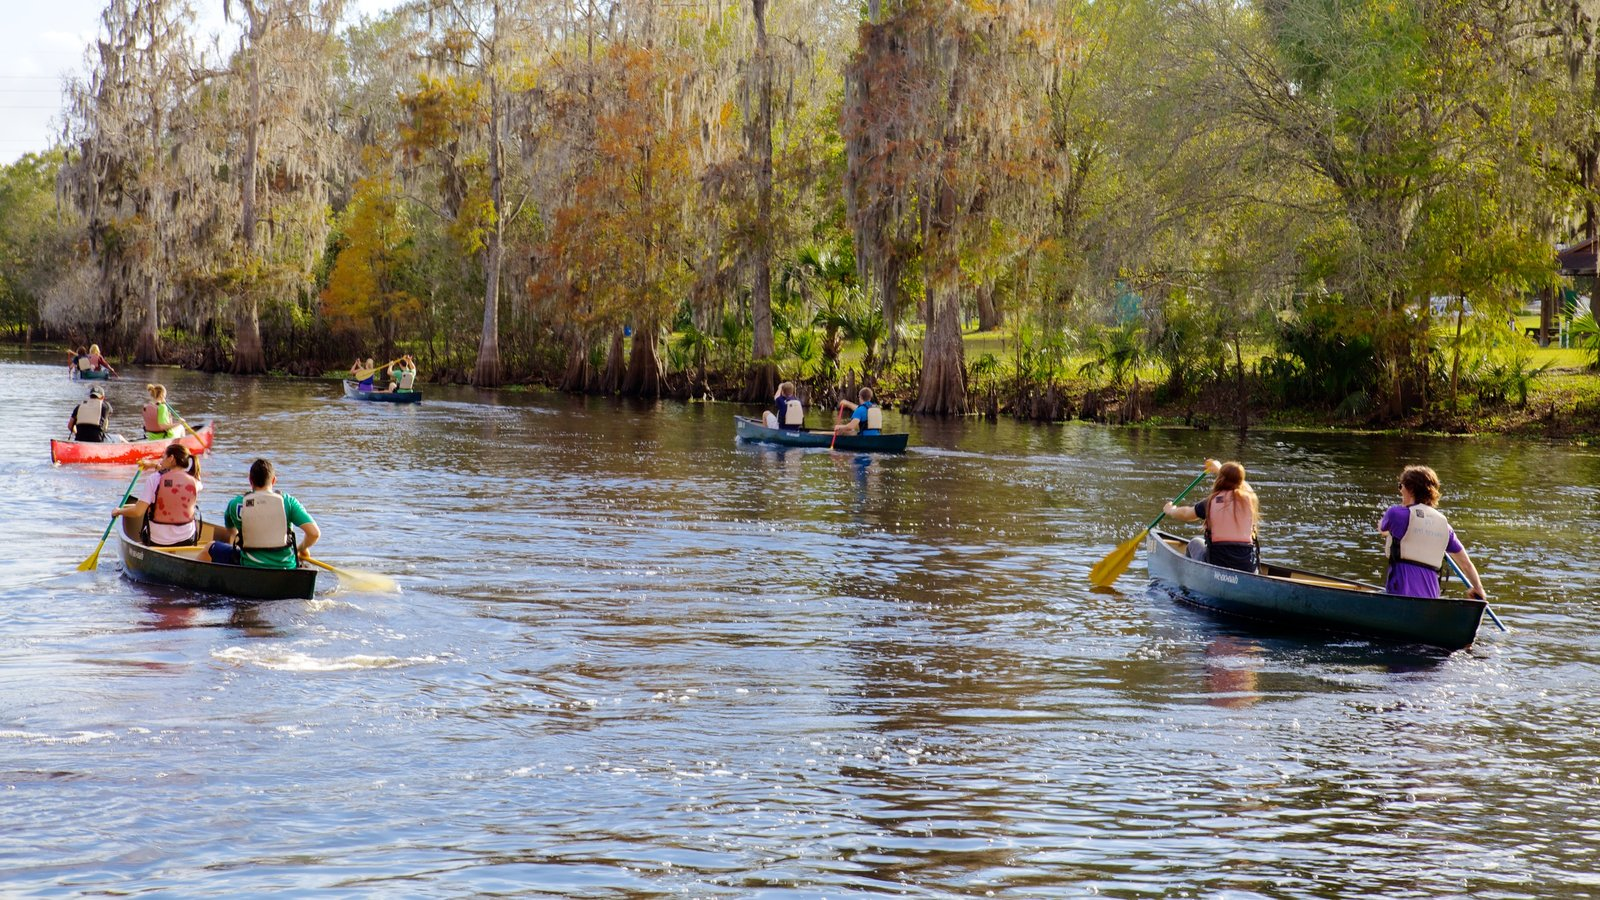 Lettuce Lake Park which includes a garden, a river or creek and kayaking or canoeing